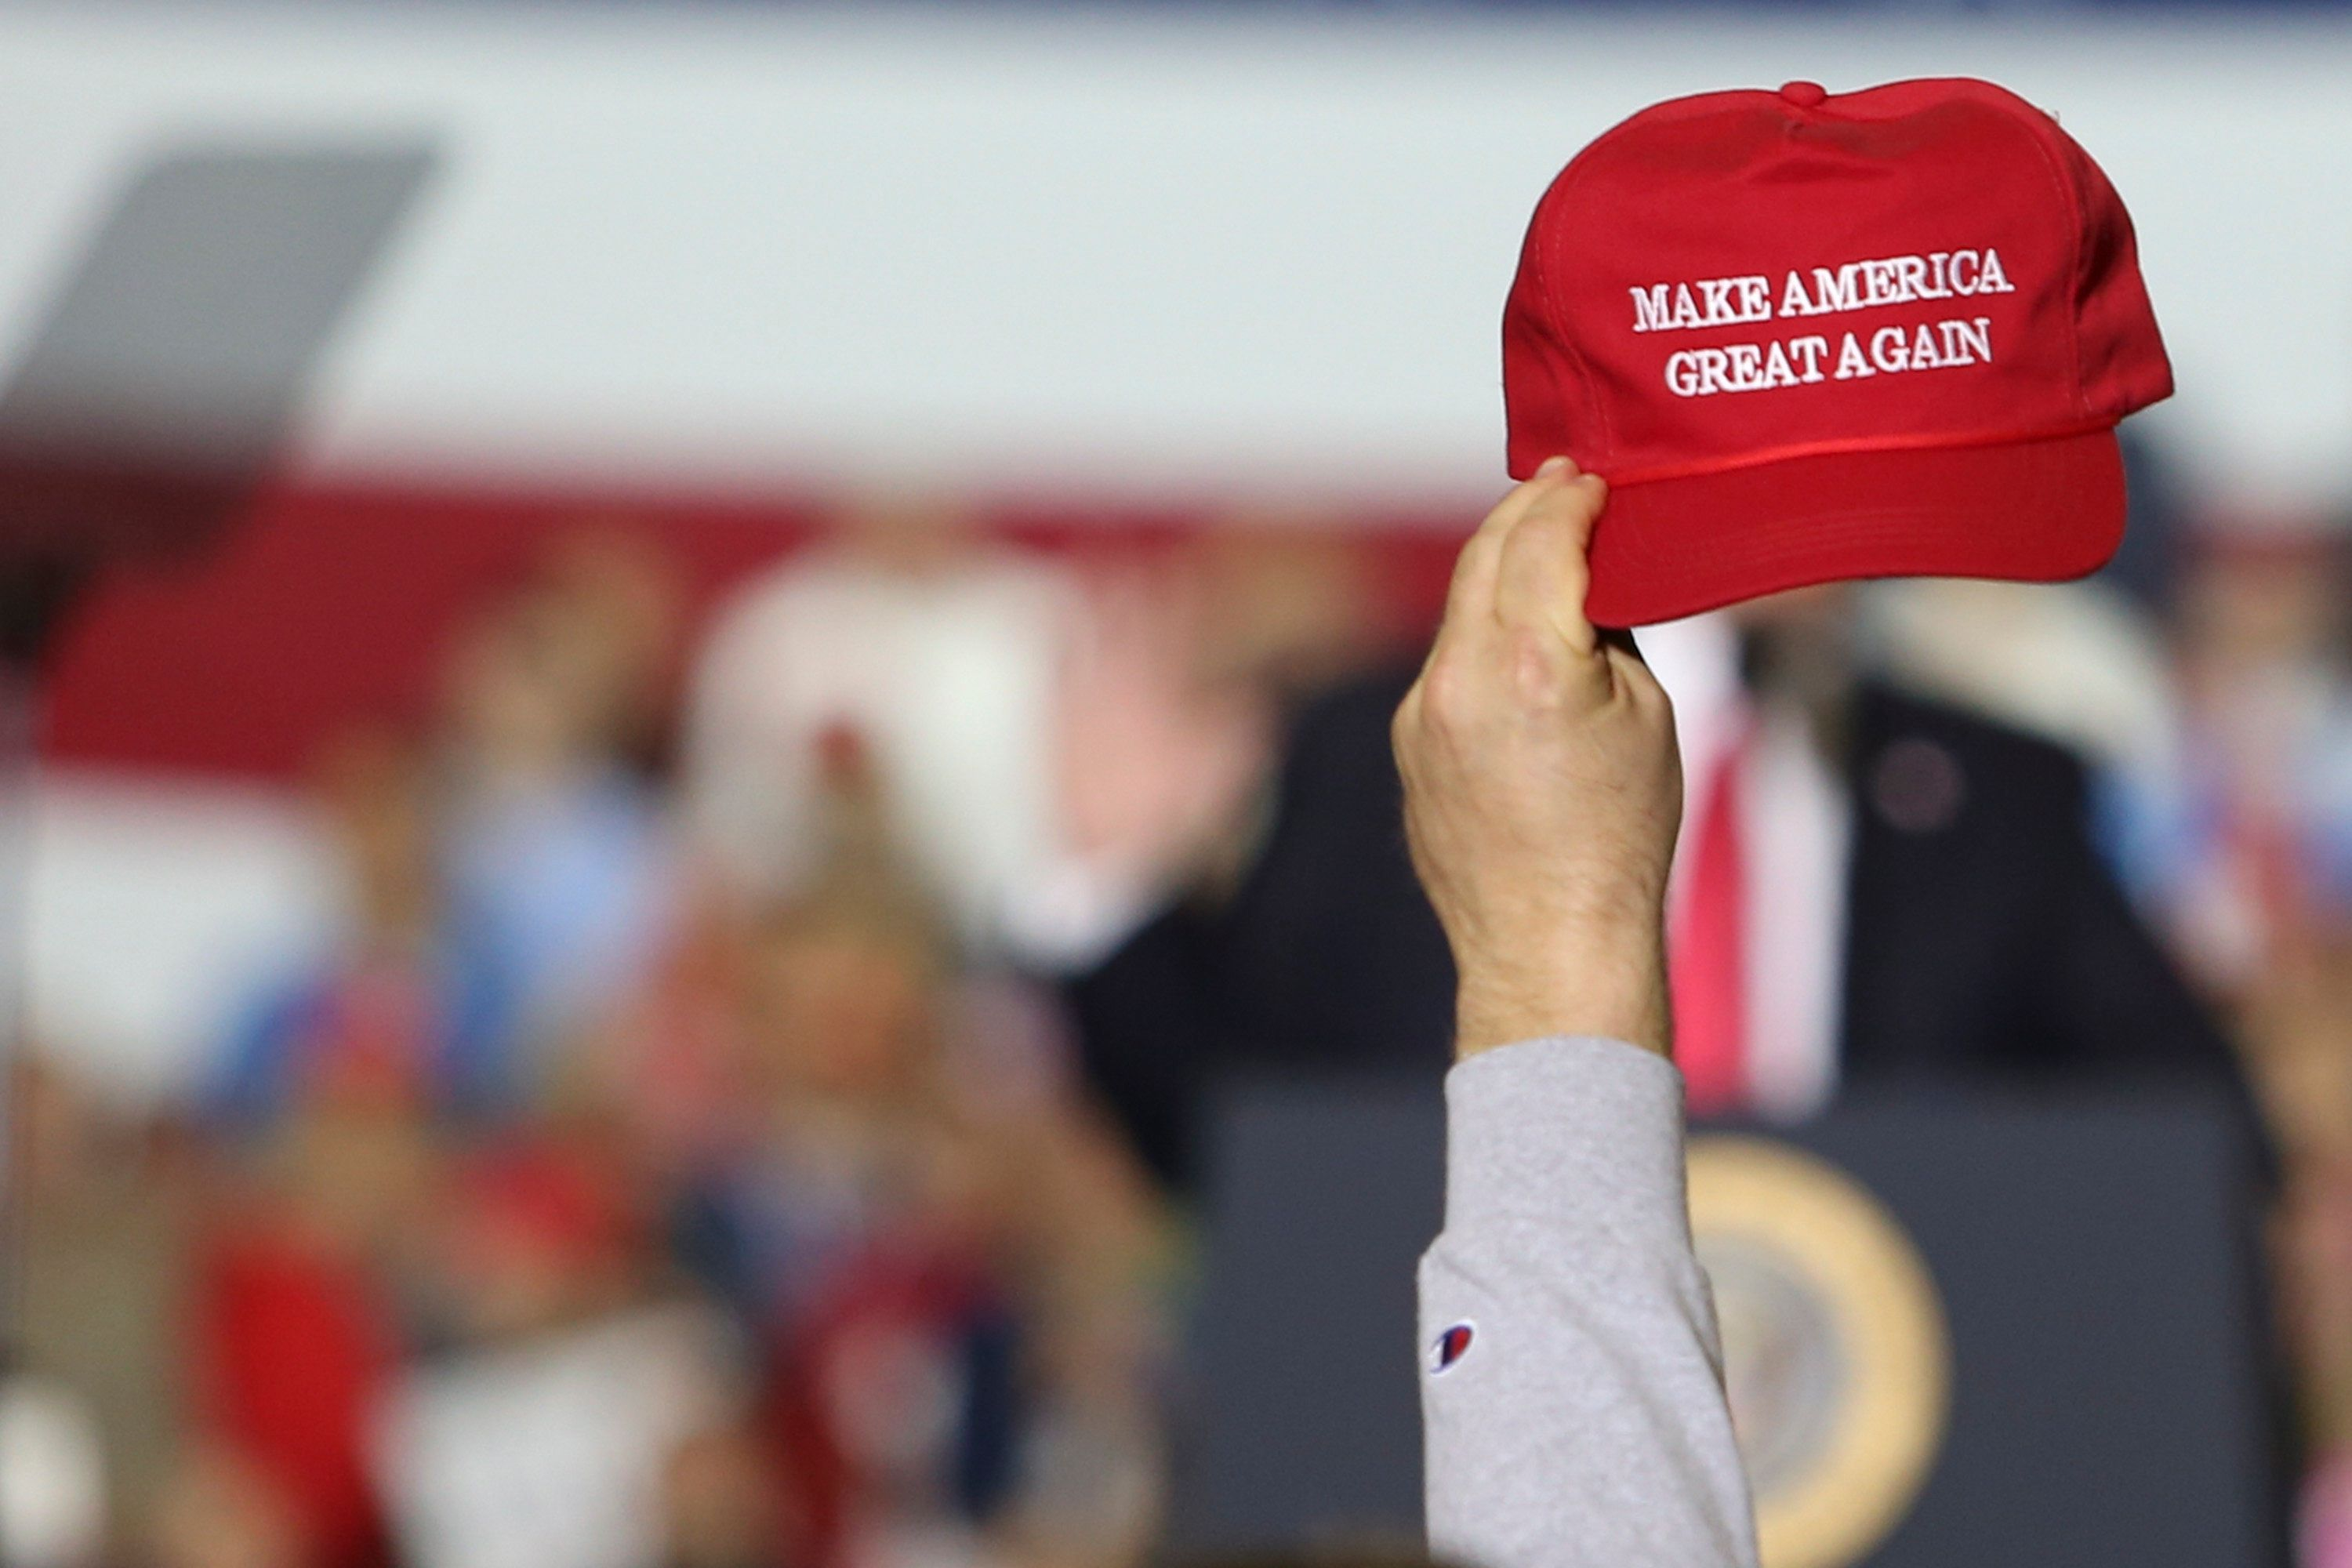 TOTAL SPORTS, WASHINGTON TOWNSHIP, MICHIGAN, UNITED STATES - 2018/04/28: A supporter seen raising a caps writting on it 'Make America Great Again' while the President Donald Trump gives a speech during a campaign rally in Washingtown Township, Michigan. (Photo by Chirag Wakaskar/SOPA Images/LightRocket via Getty Images)